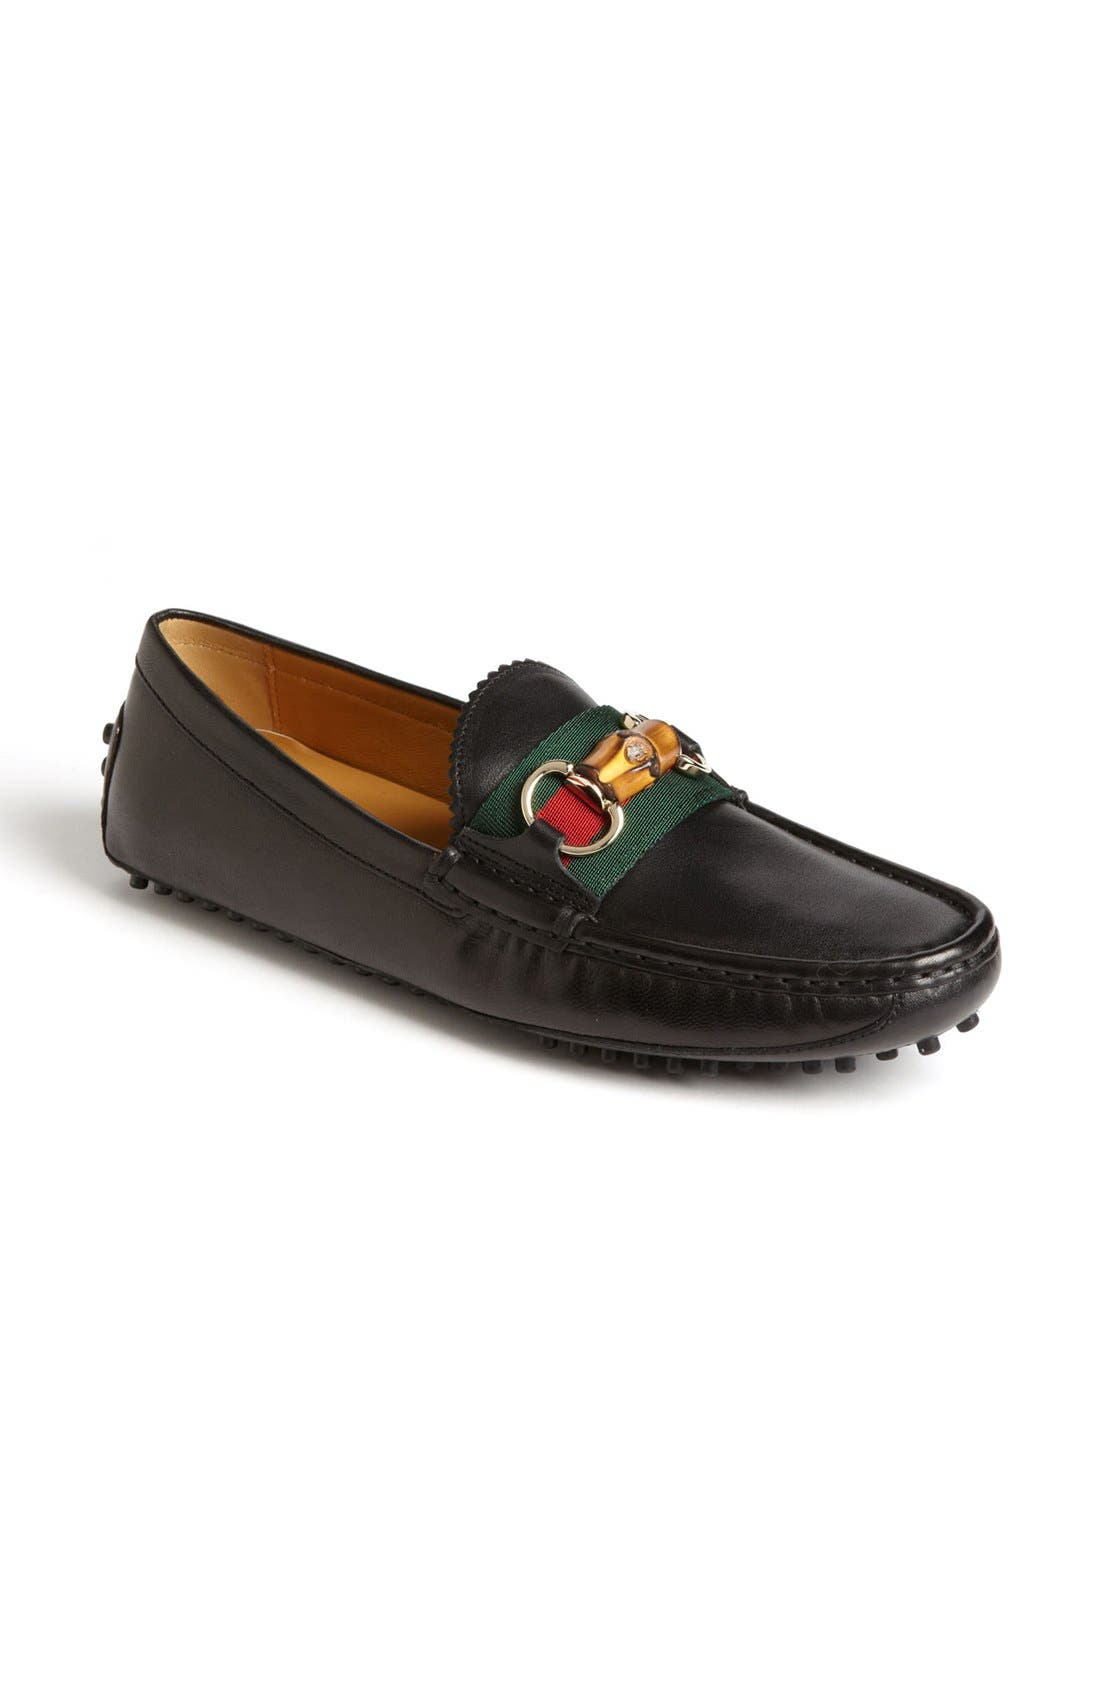 Alternate Image 1 Selected - Gucci 'Damo' Driving Loafer